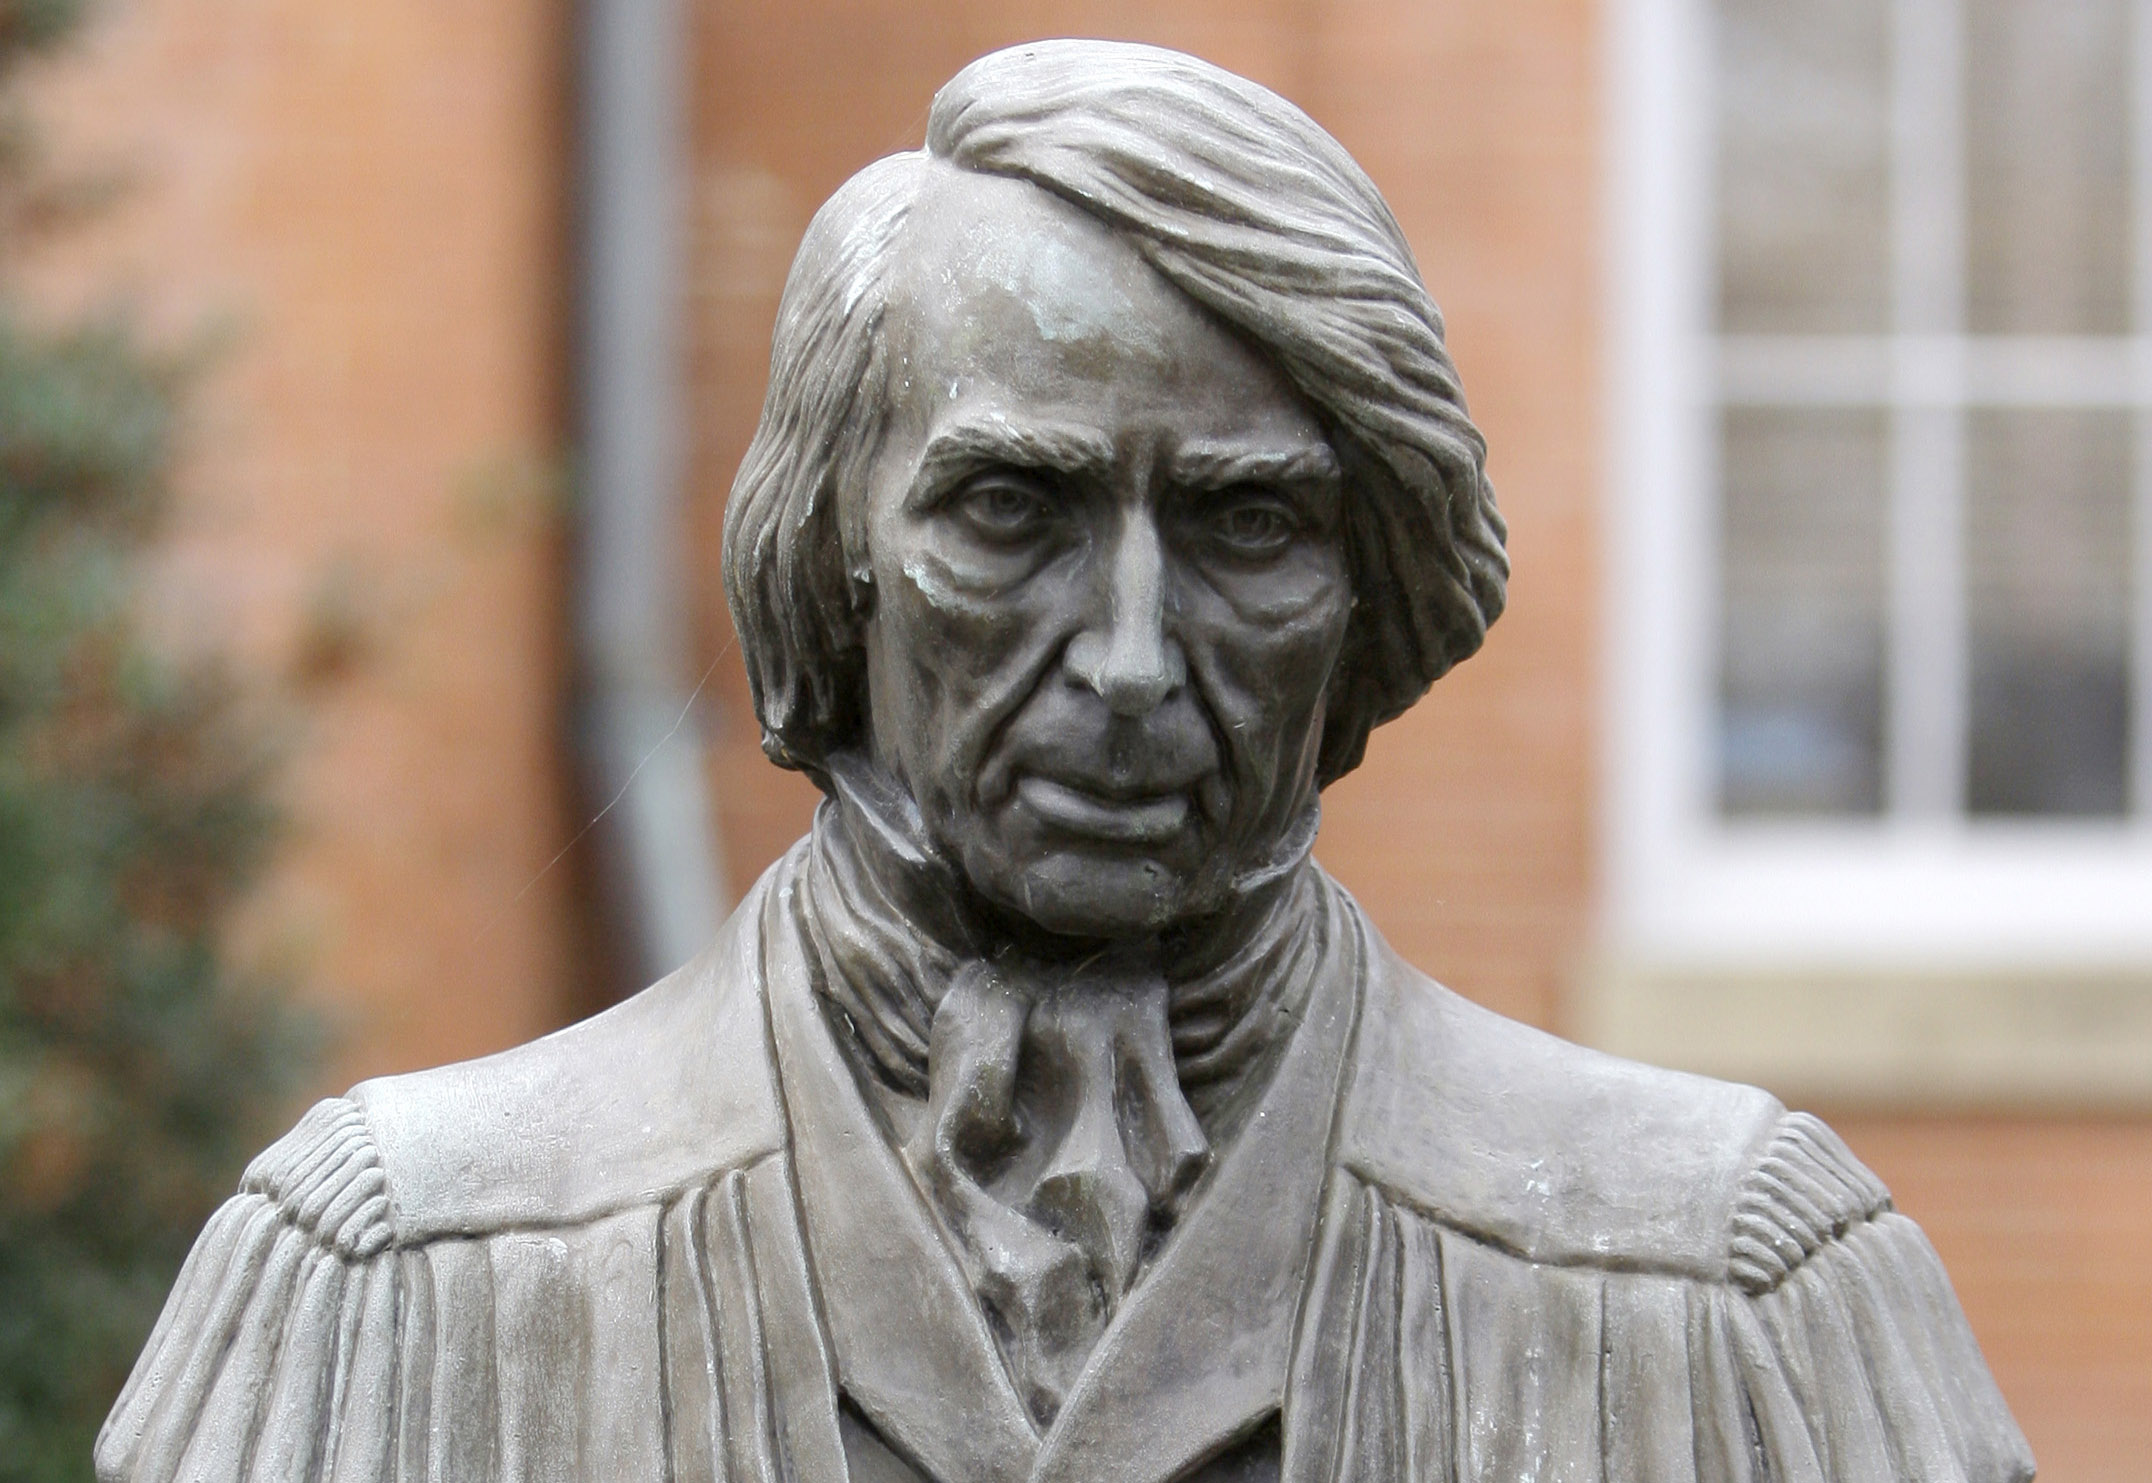 A statue of Supreme Court Chief Justice Roger Brooke Taney is displayed in front of City Hall, in Frederick, Md.